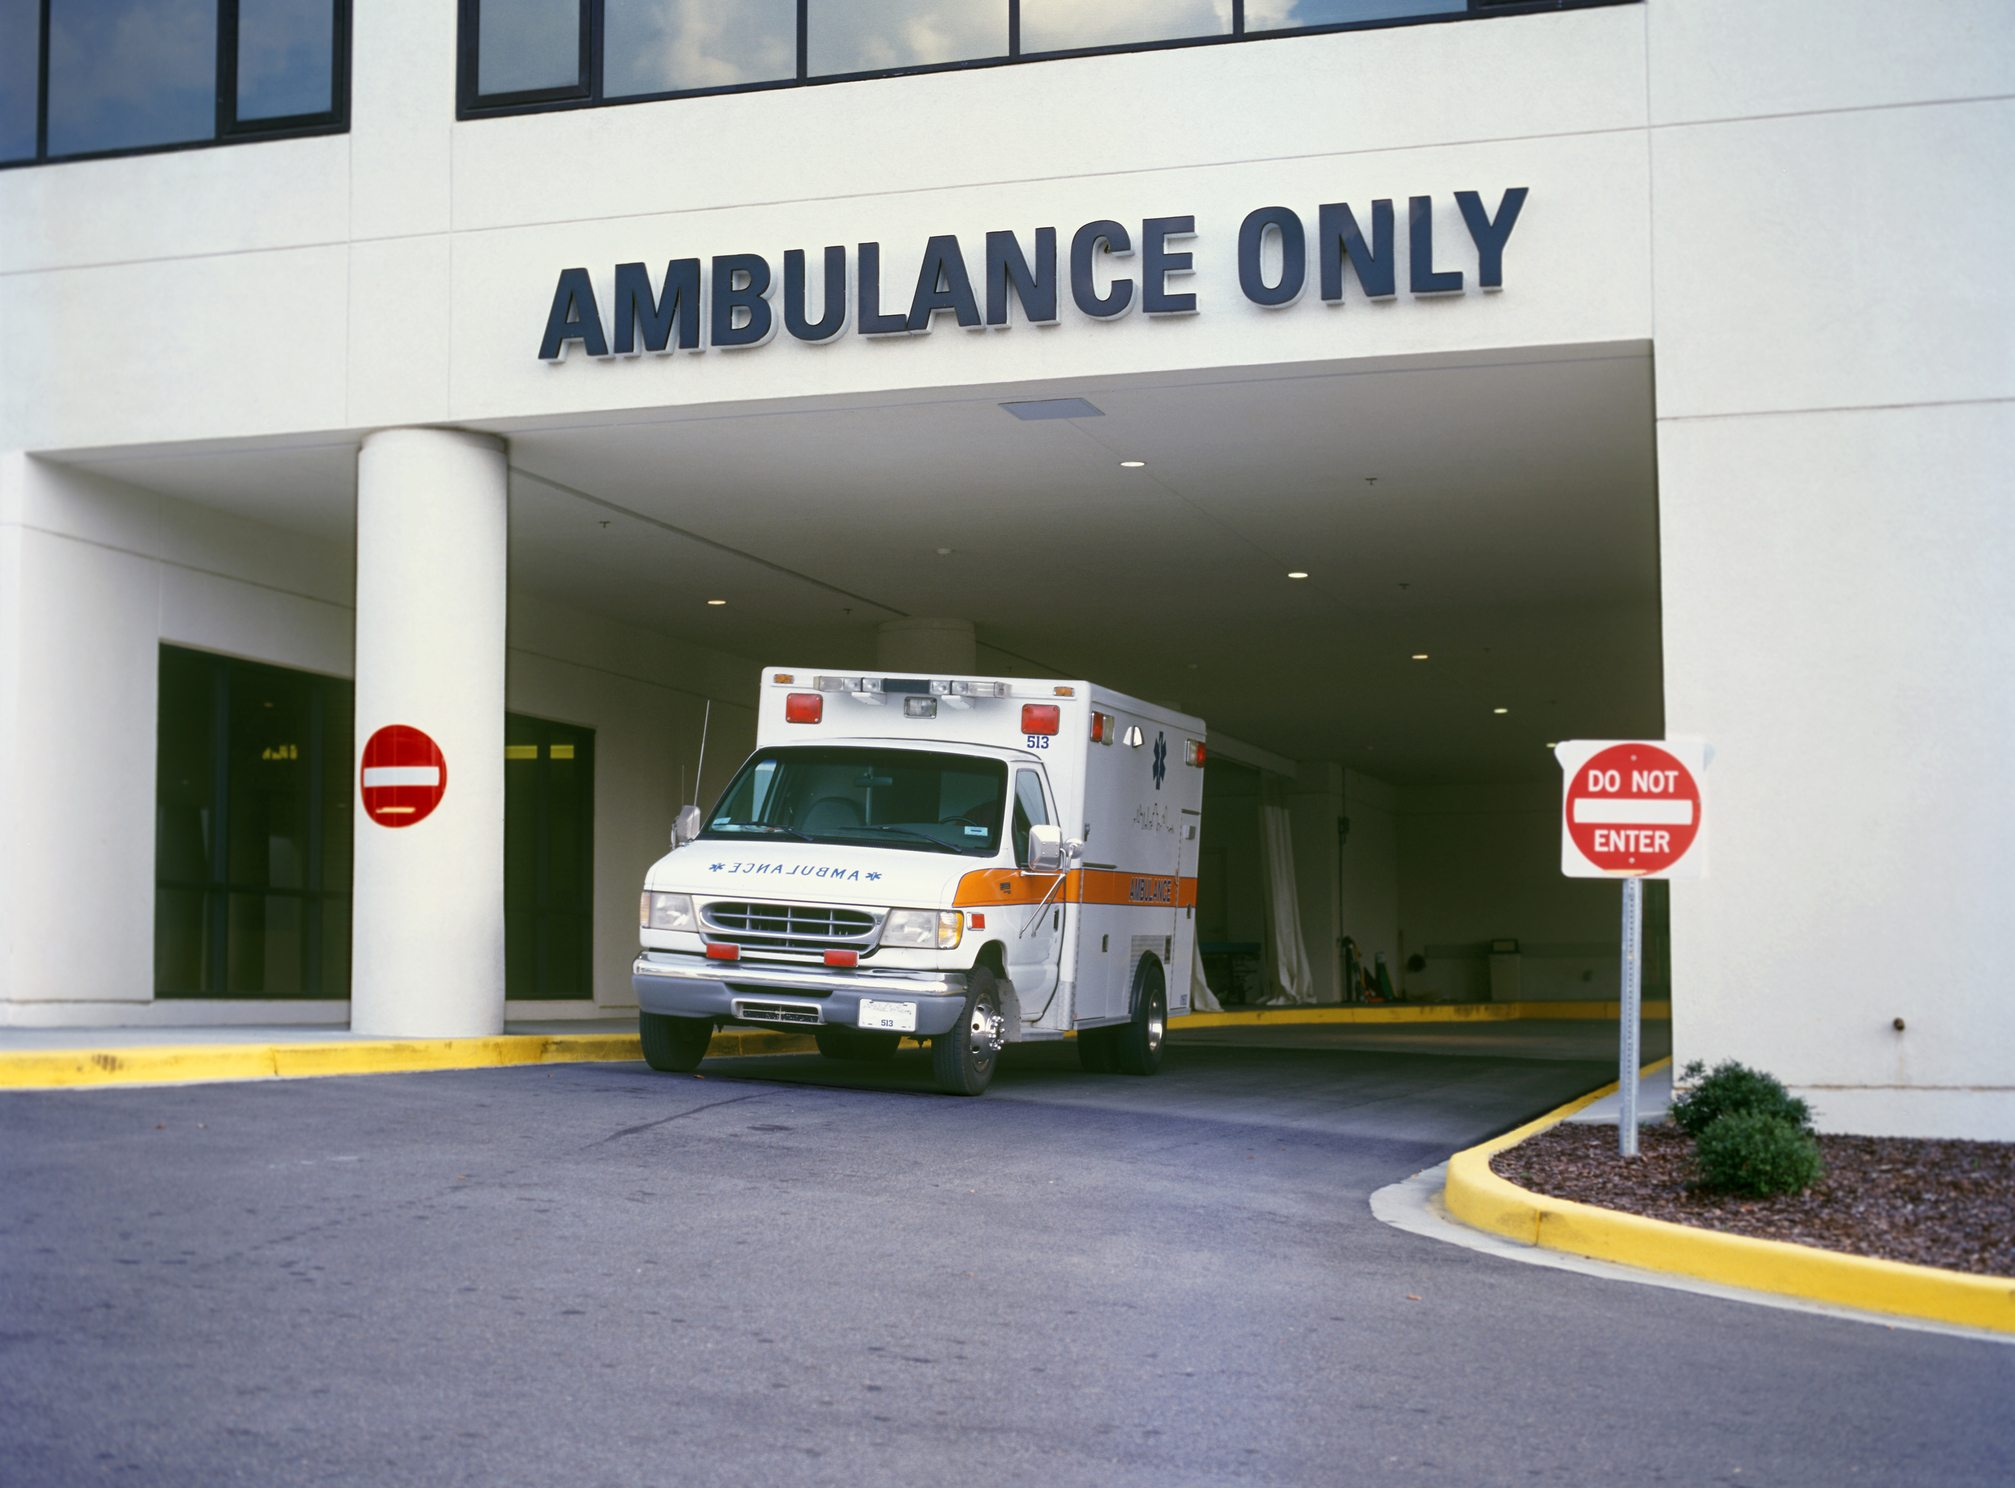 Ambulance at Emergency Room entrance